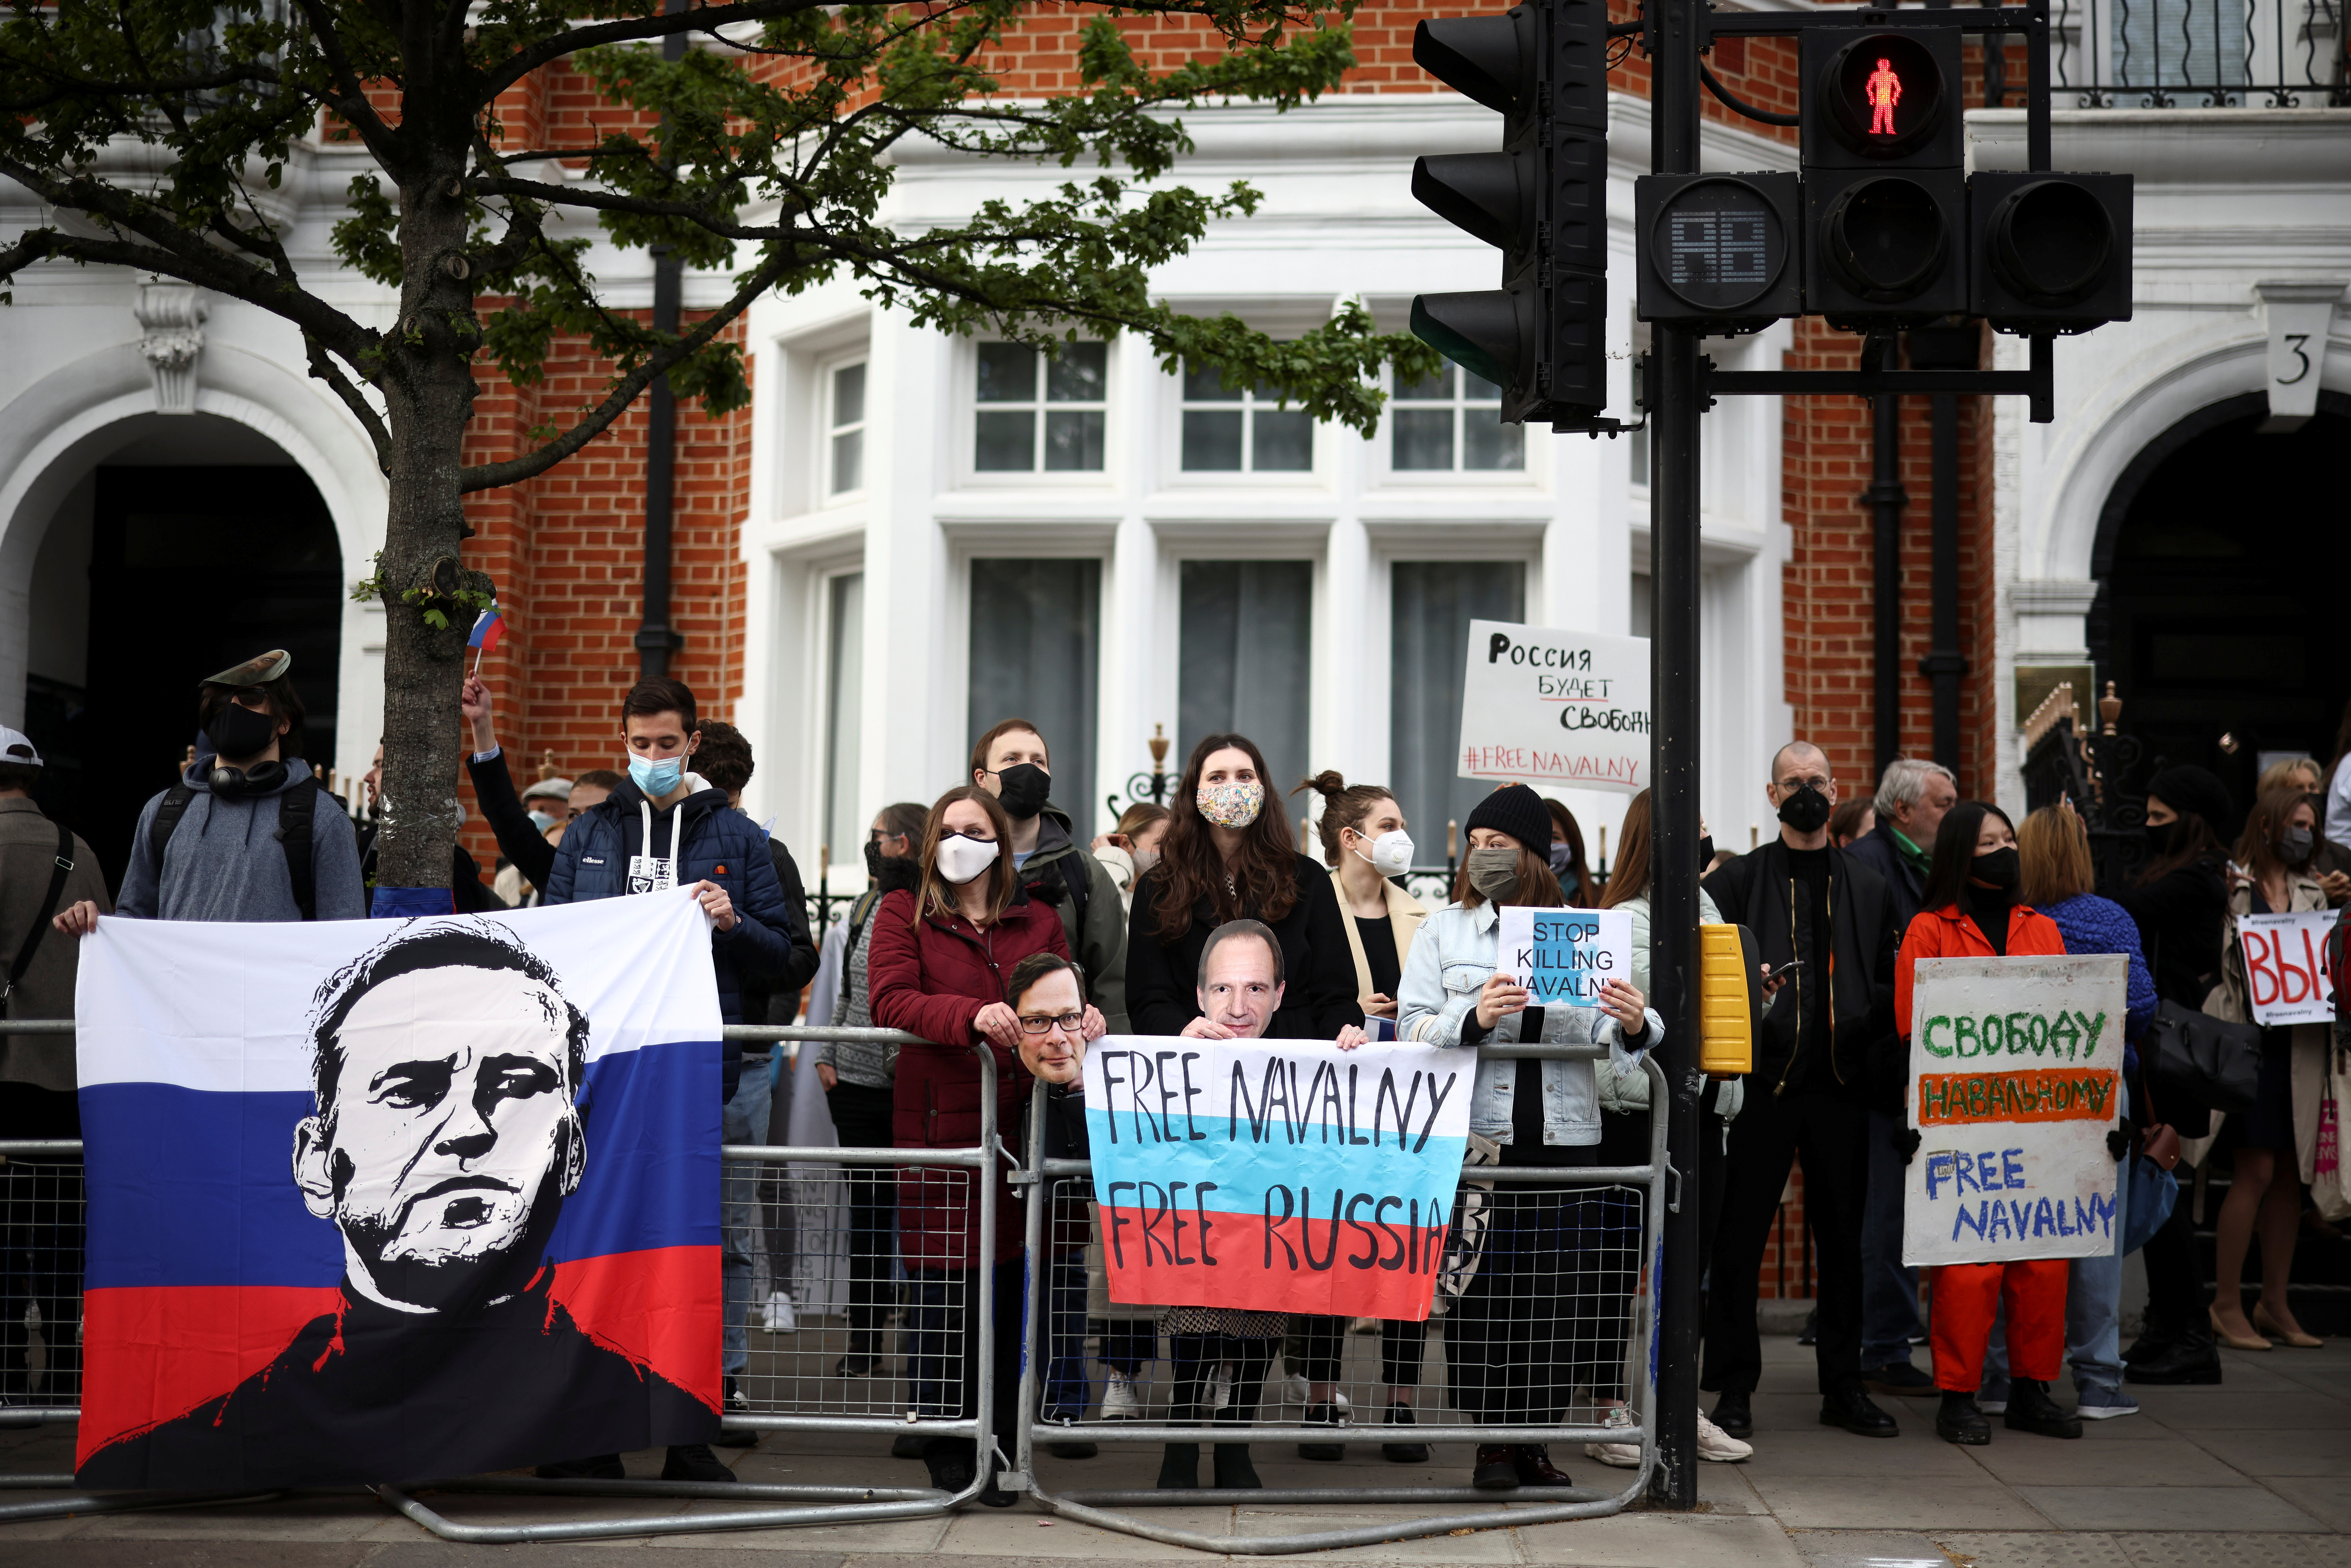 Protesters demonstrate in support of jailed Russian opposition politician Alexei Navalny outside the Russian Embassy in London, Britain, April 21, 2021. REUTERS/Henry Nicholls